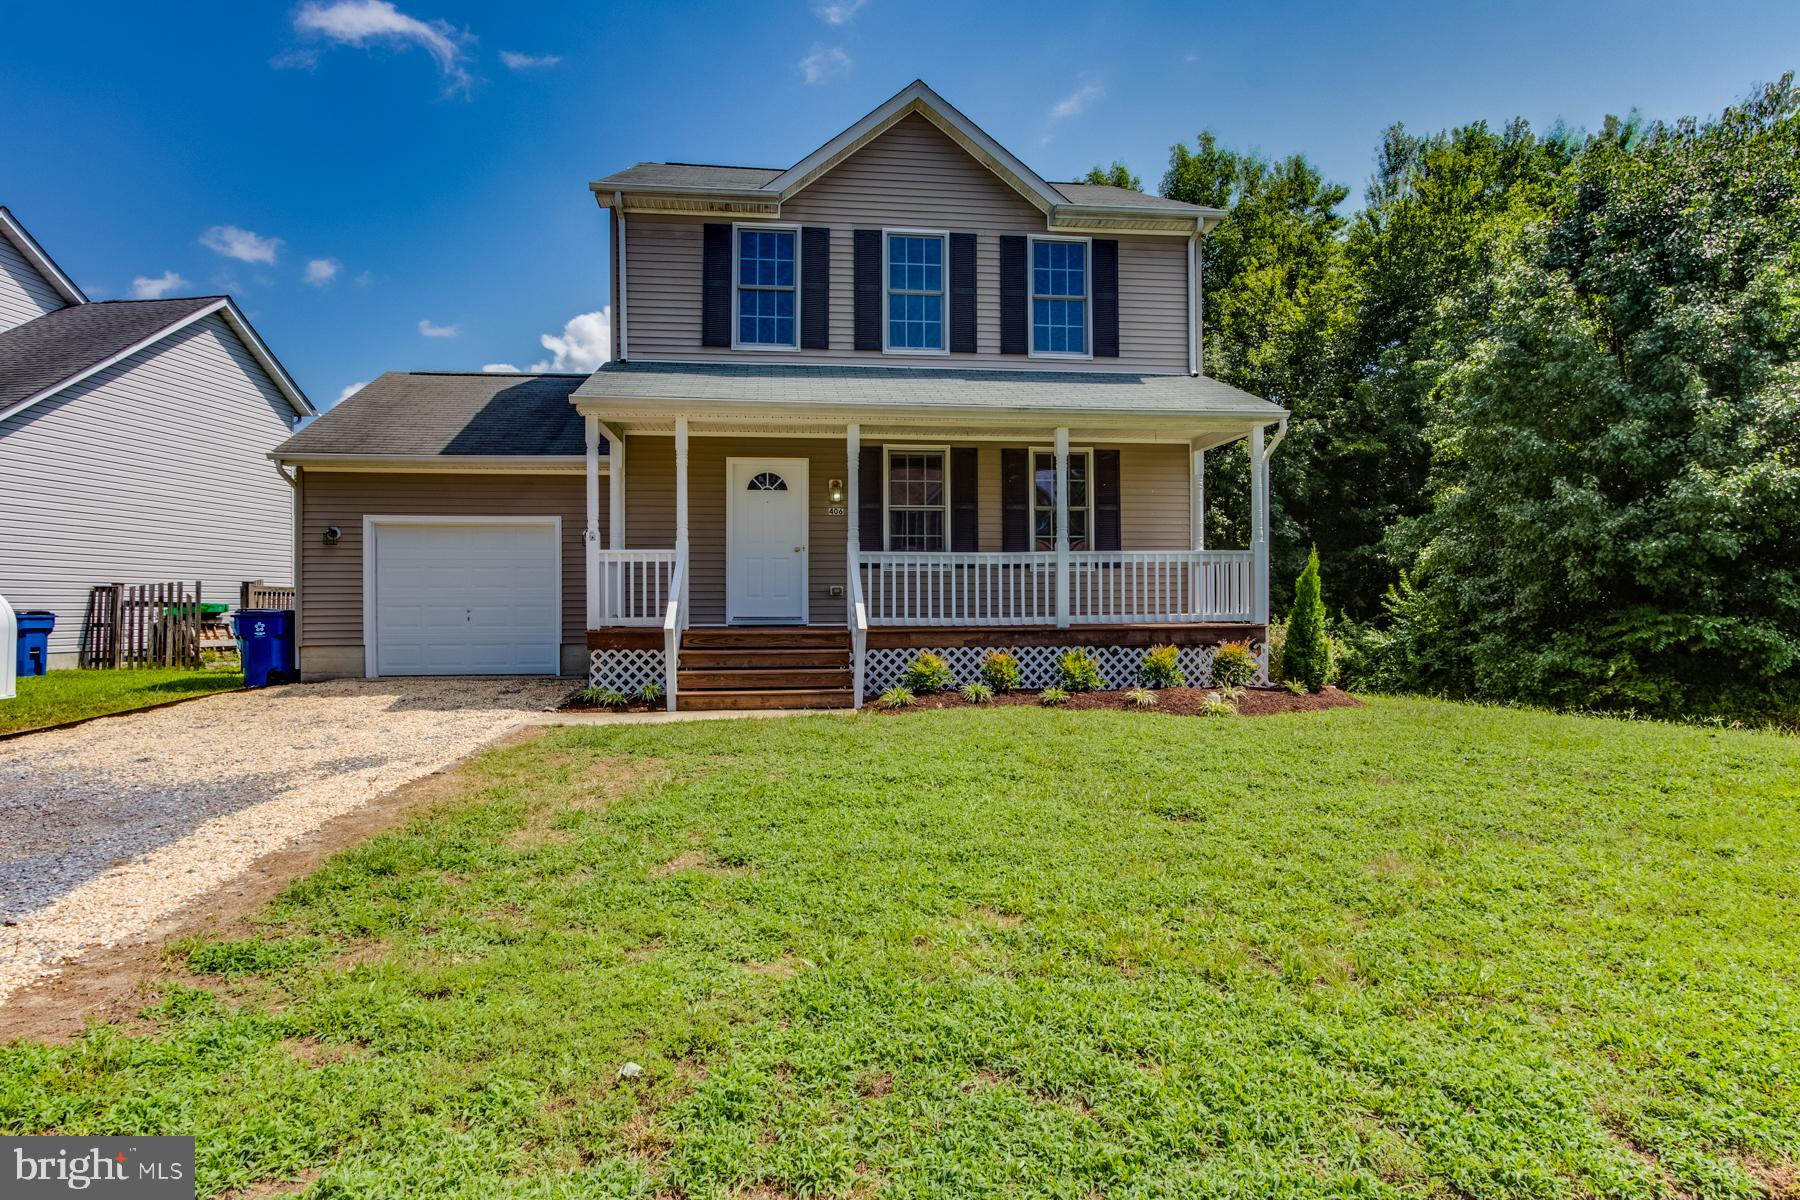 406 MALLARD DRIVE, GREENSBORO, MD 21639